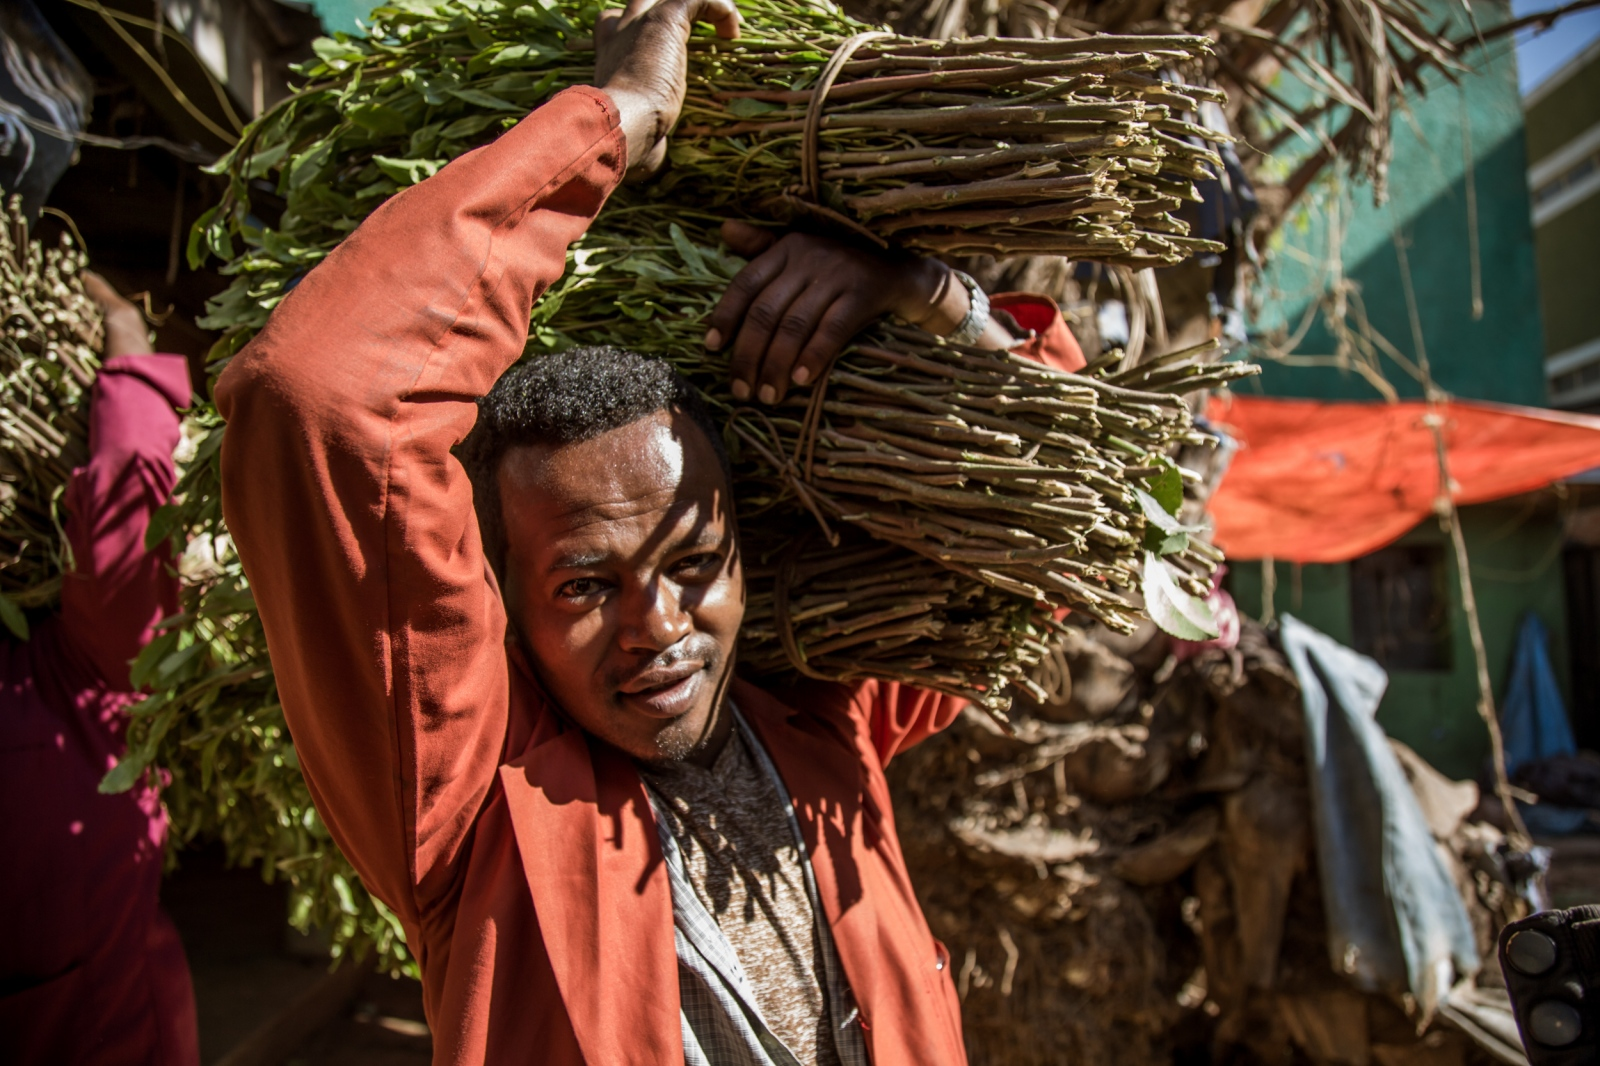 Ethiopian man carrying bundles of khat on the largest Ethiopian khat market in Aweday near Harar. The production of khat in Ethiopia has boomed over the last two decades, making the country the world's leading source.